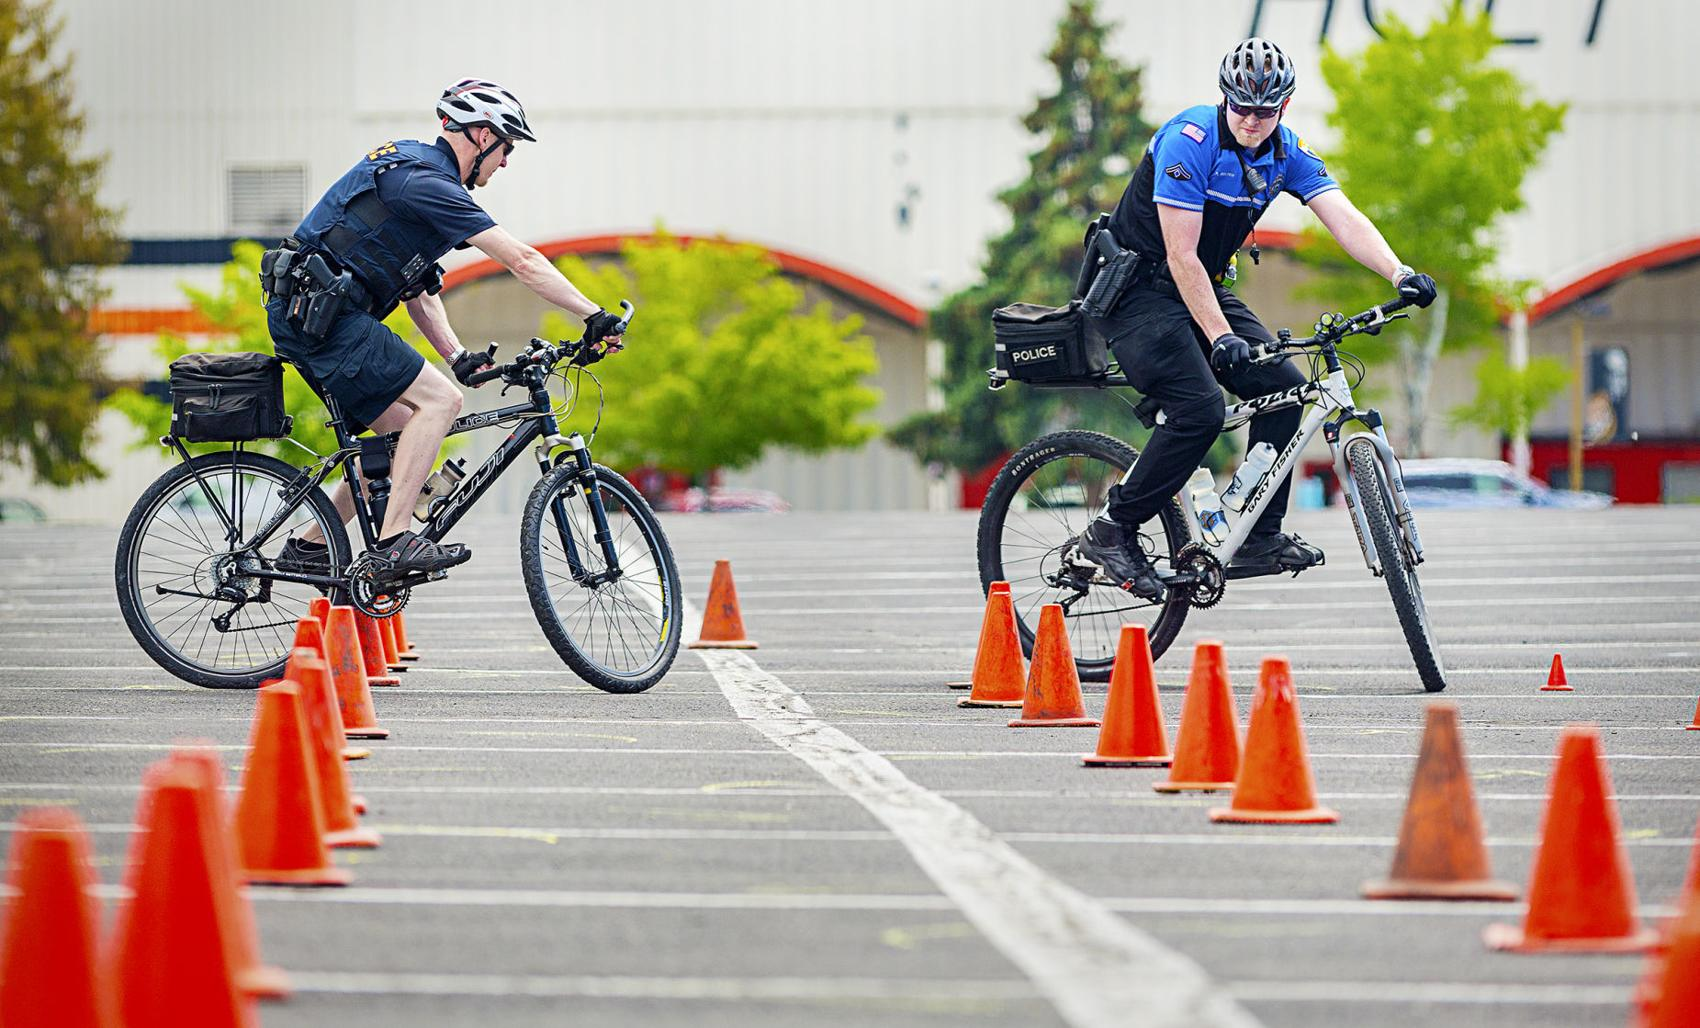 Bike patrol, more officers key factors in PPD's crime fighting strategy